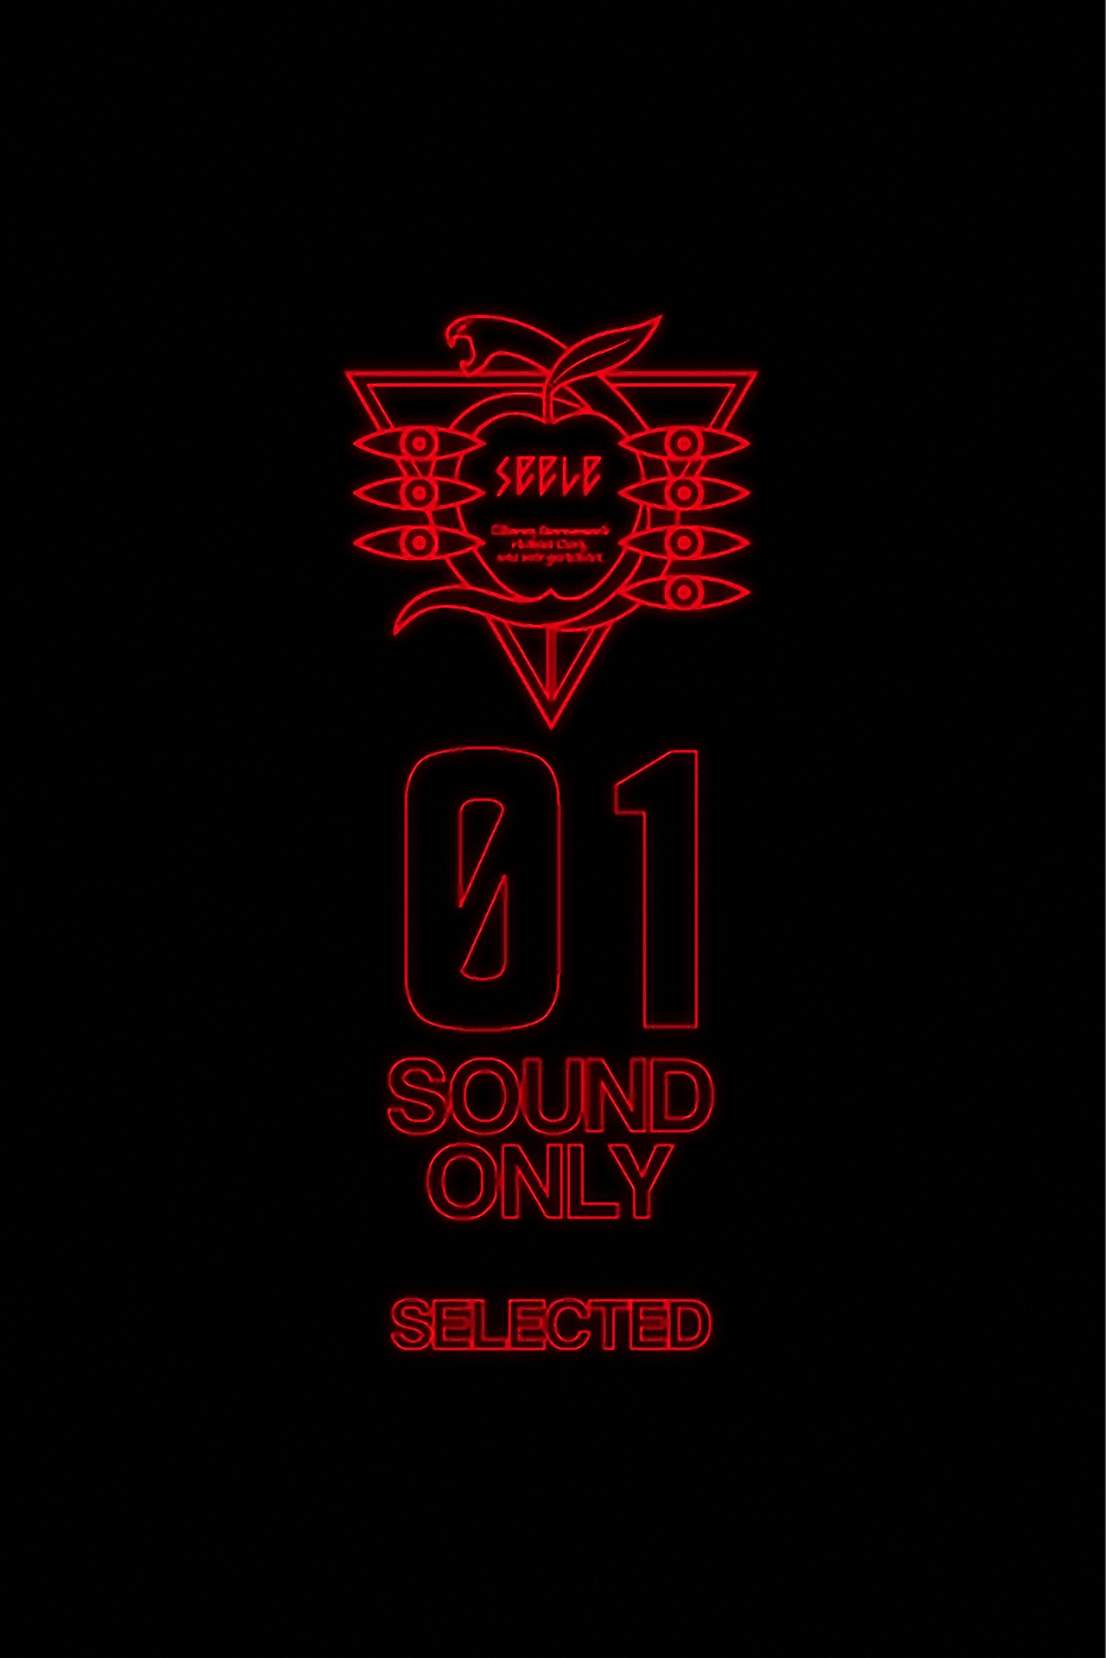 Seele Sound Only